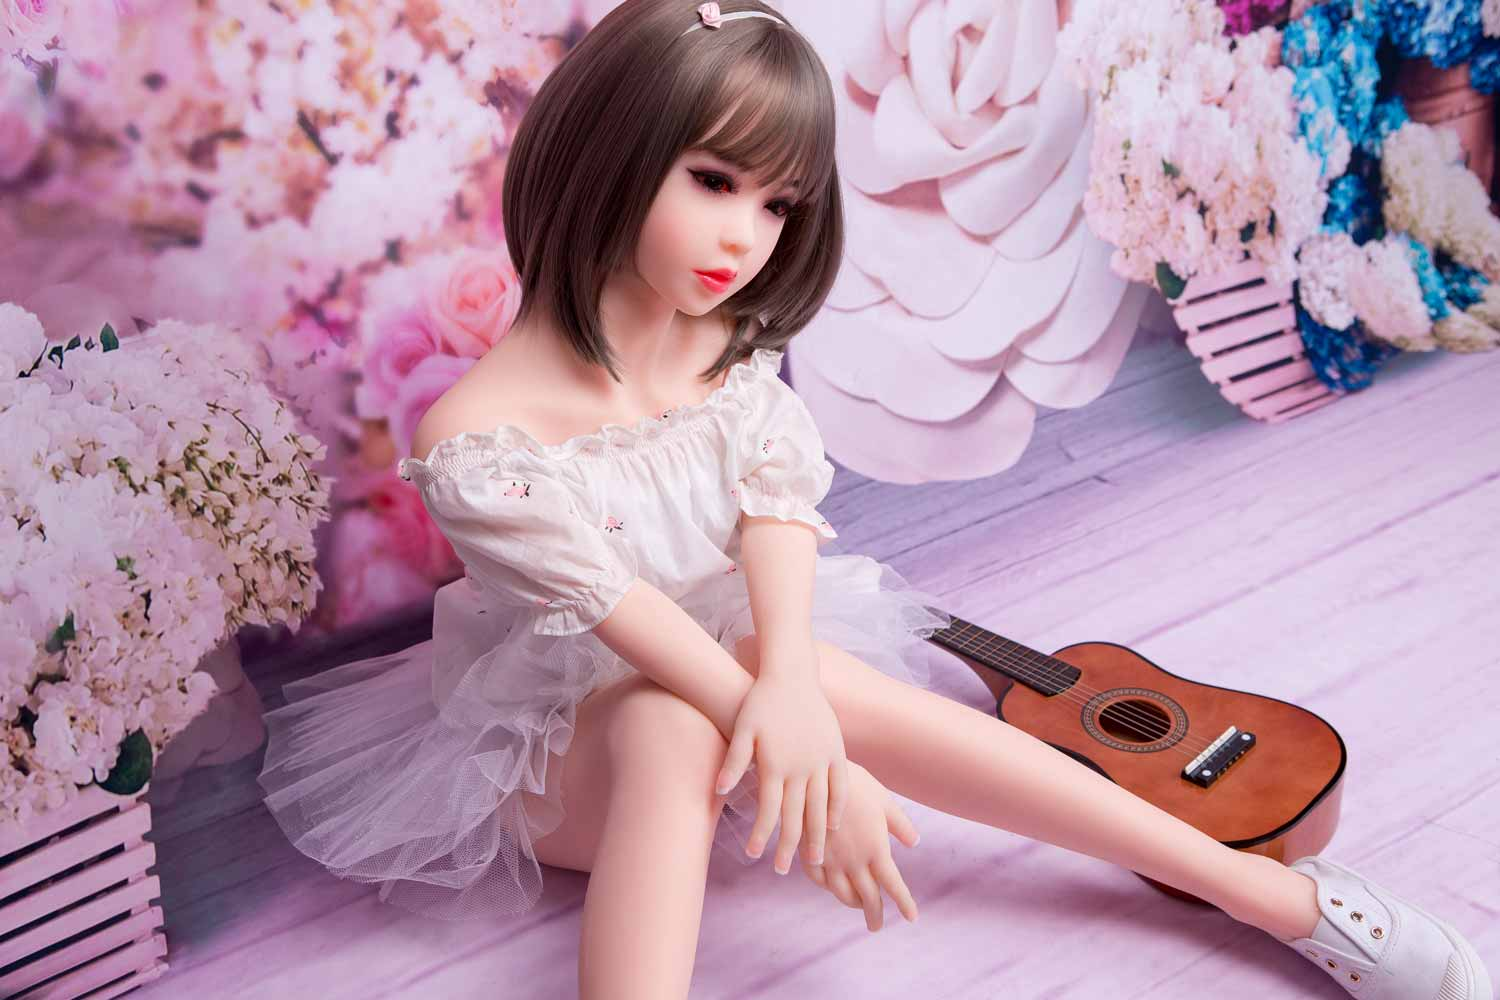 Mini sex doll with guitar next to it